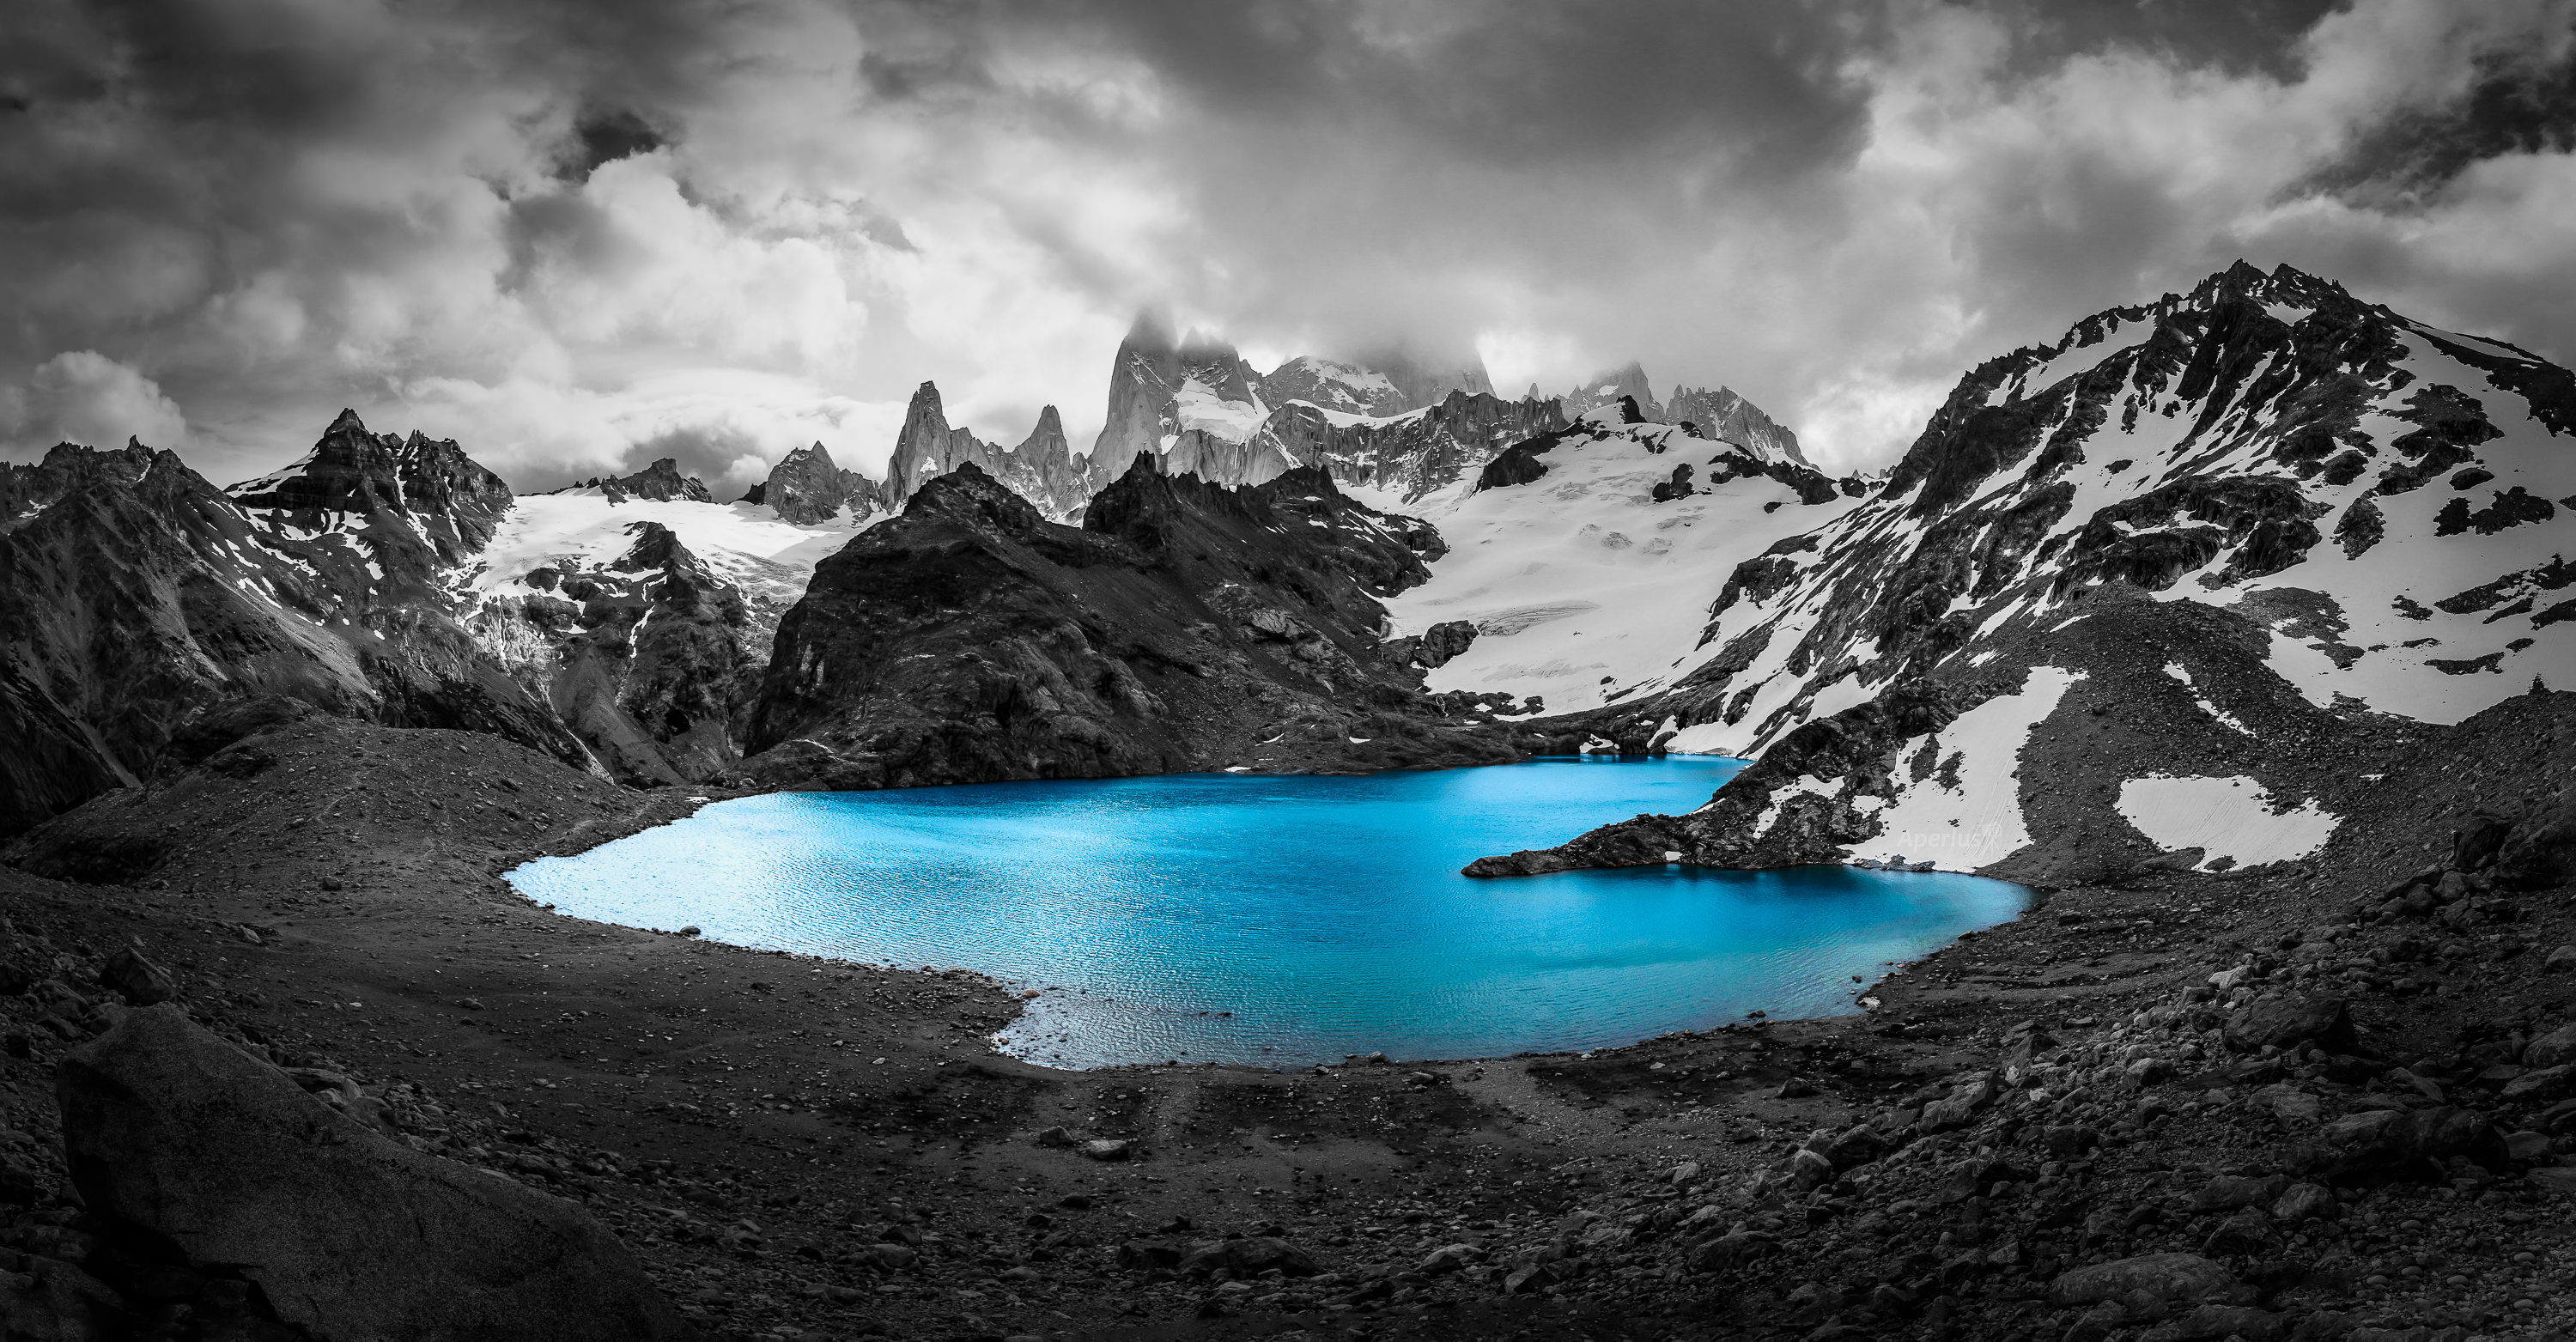 Fitz Roy Trek and Cerro Torre Hiking Guide from El Chalten, Patagonia